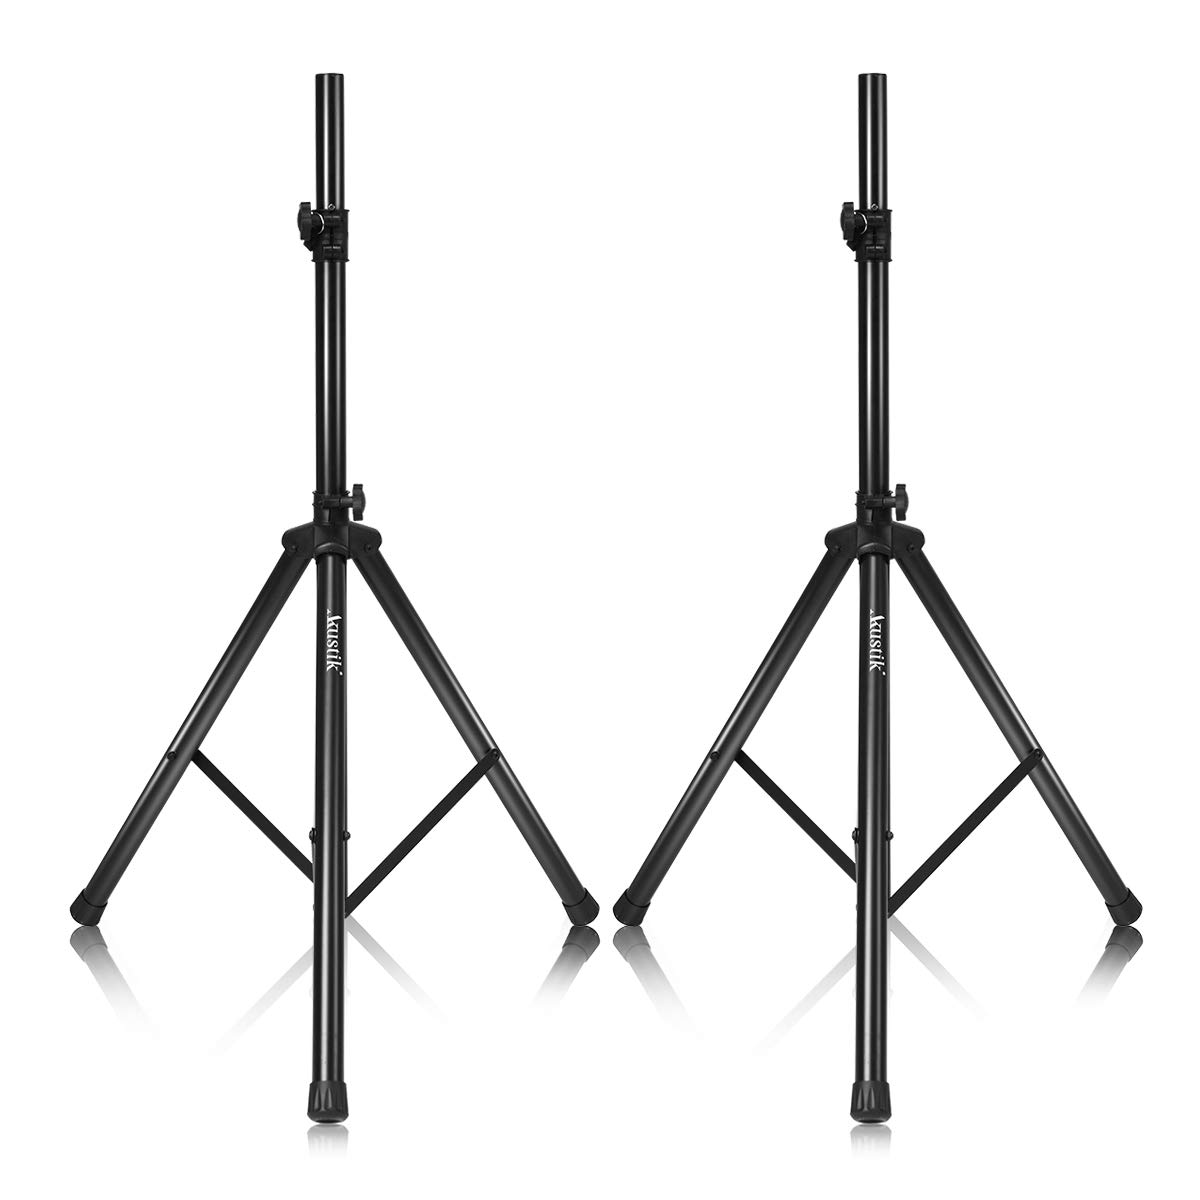 AKUSTIK Universal Speaker Stand with 37.5''-75'' Adjustable Height, 35MM Compatible Insert, 150lbs Weight Capacity, Safety Locking Knob & PIN, DJ PA Tripod Stand (Pair of (37.5''-75''))